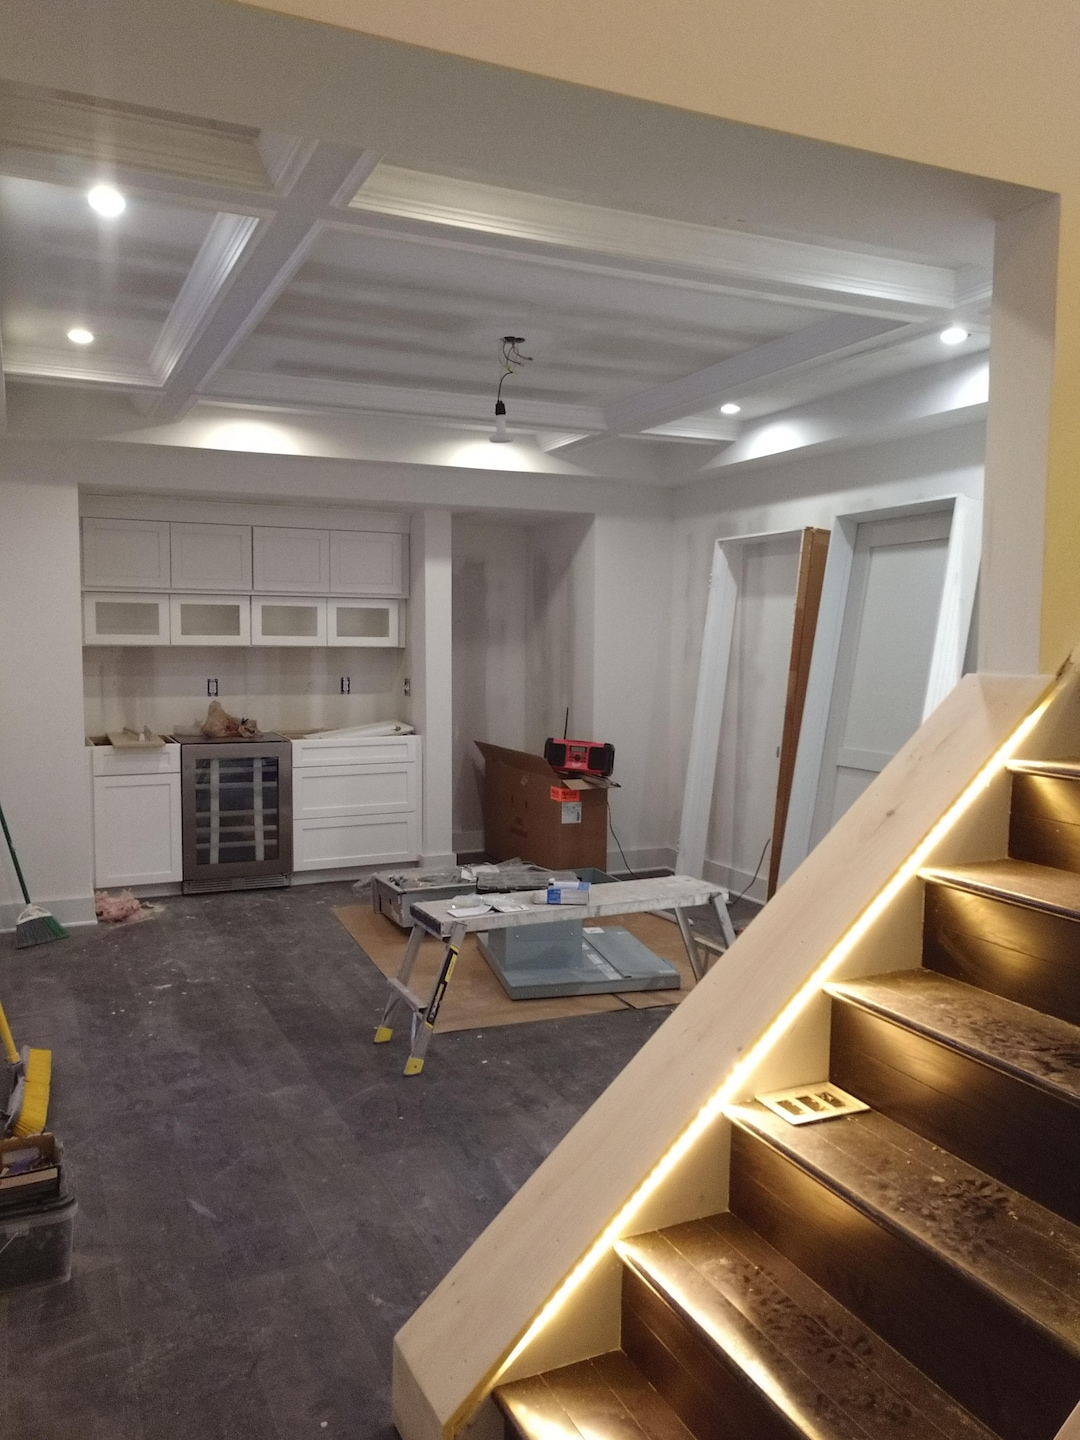 G and R Contracting